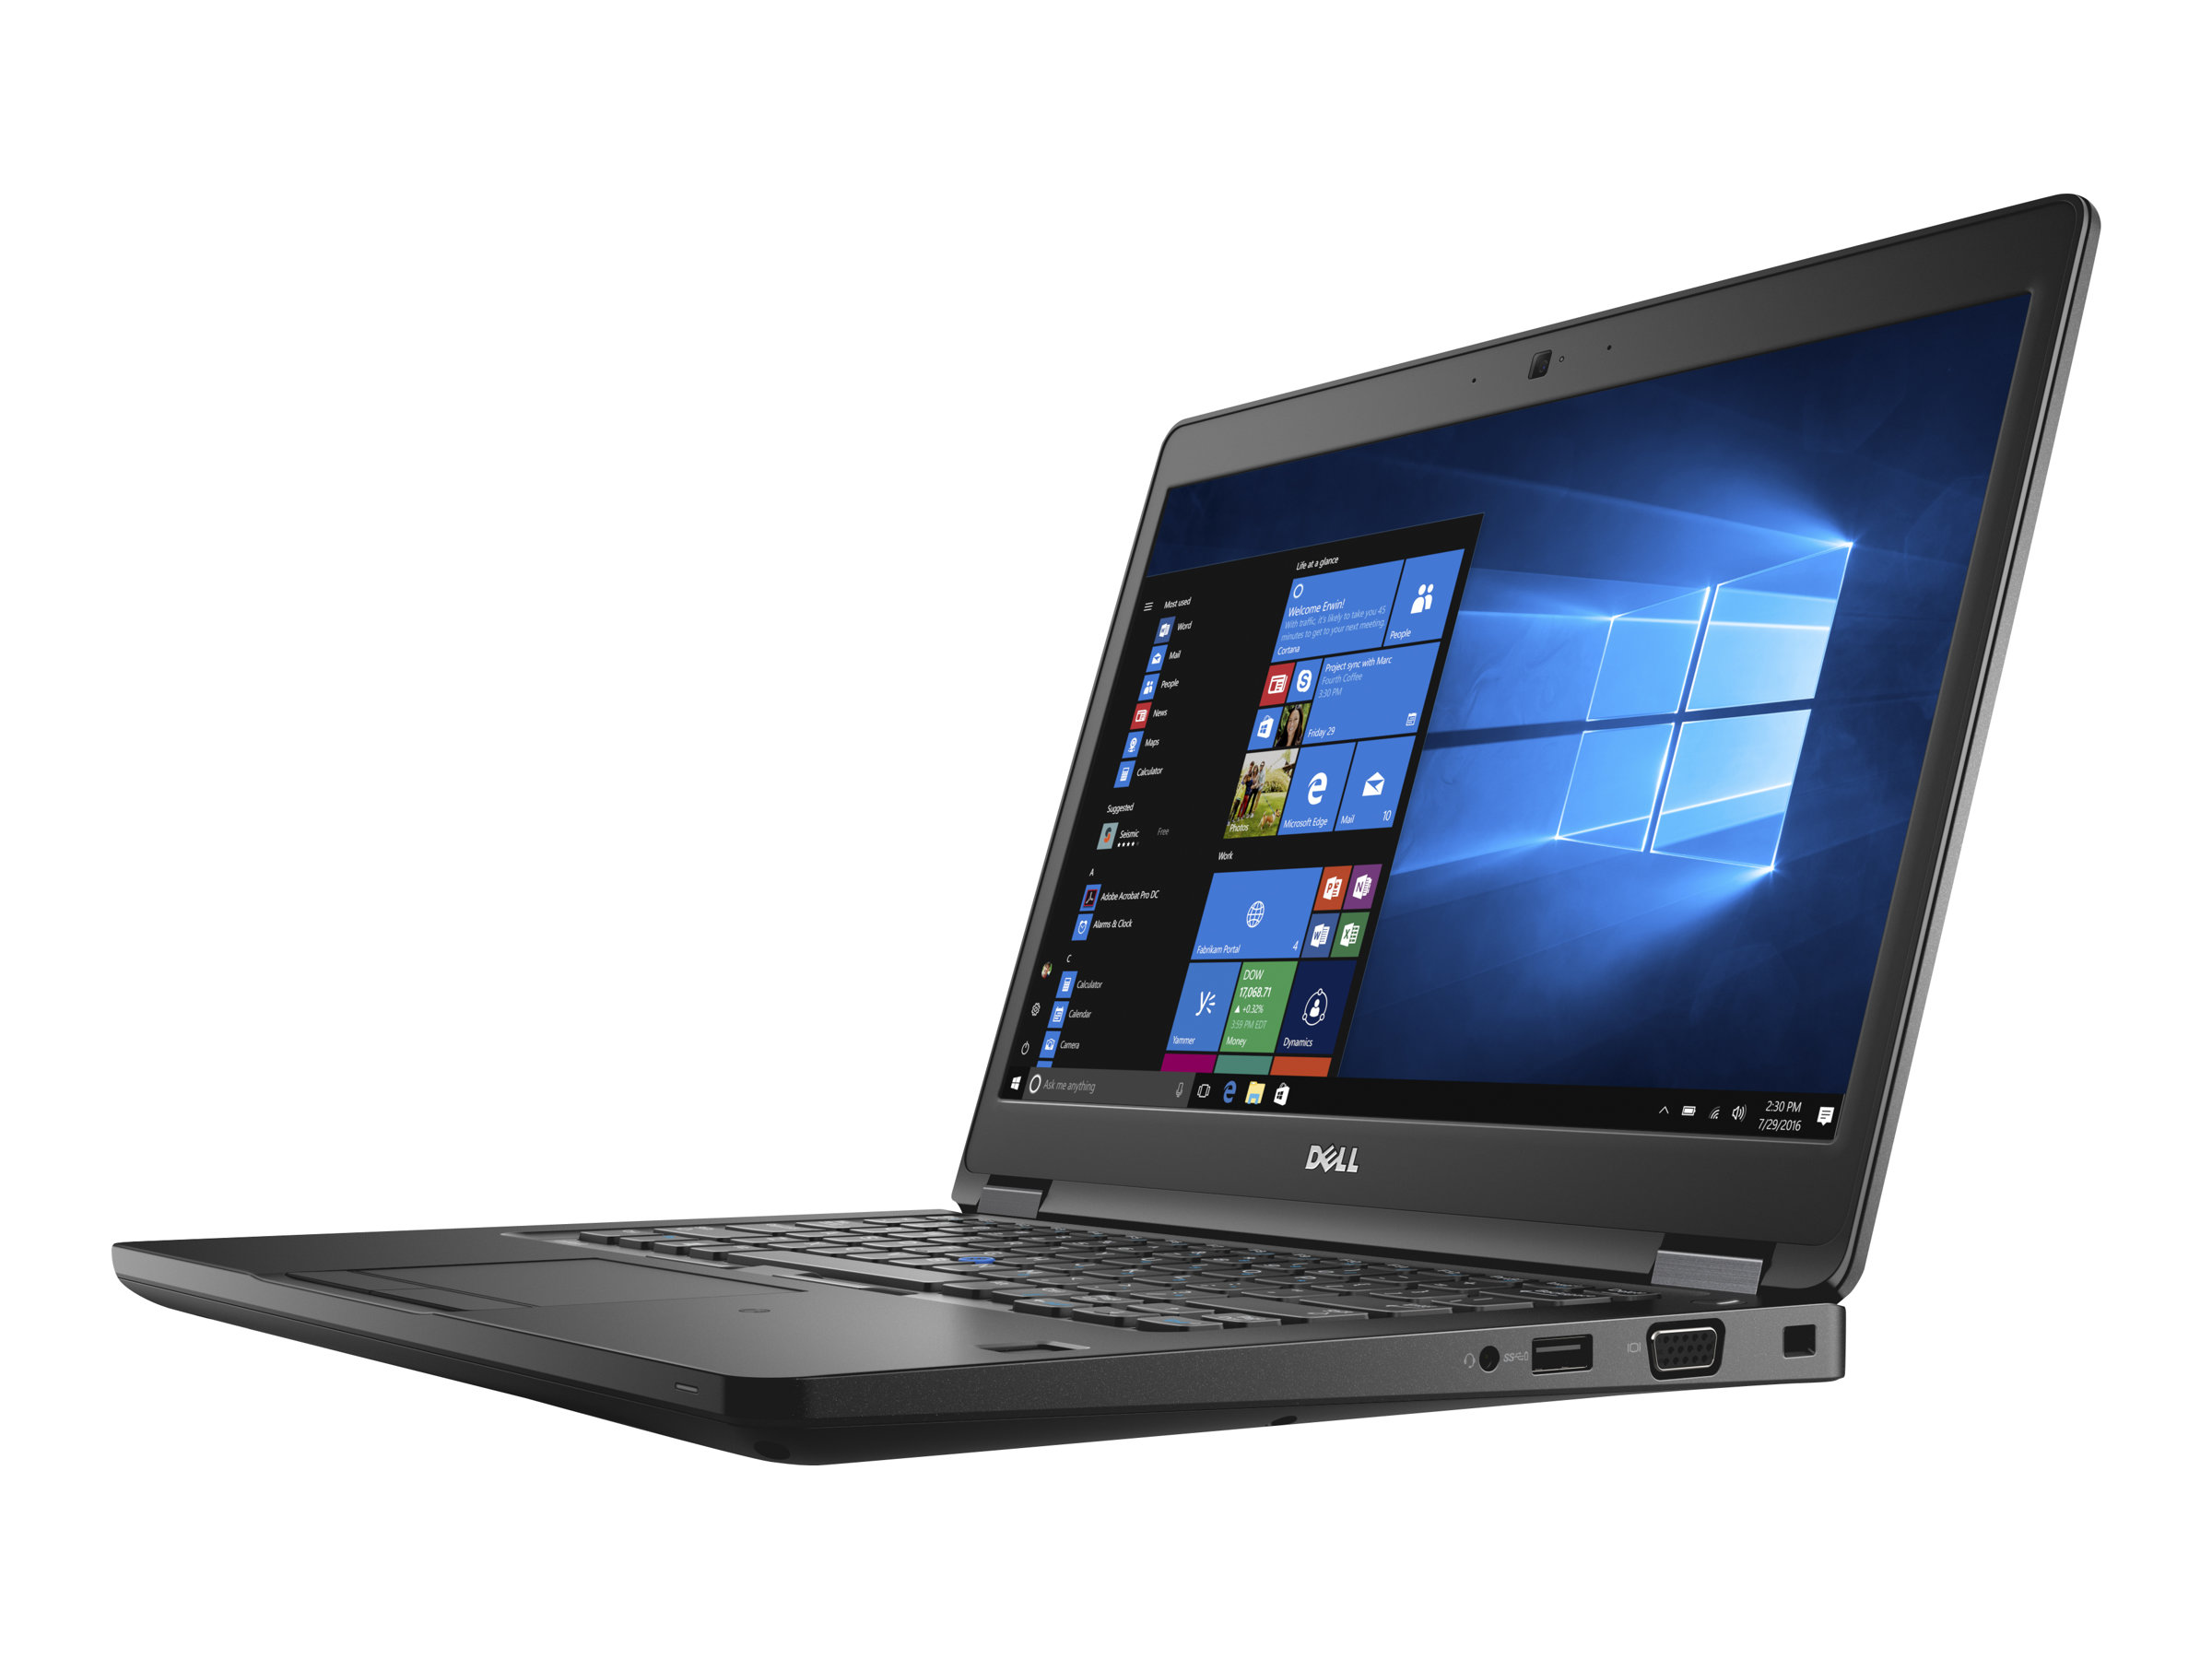 Dell Latitude 5480 - Core i5 7440HQ / 2.8 GHz - Win 10 Pro 64-Bit - 8 GB RAM - 256 GB SSD - 35.56 cm (14